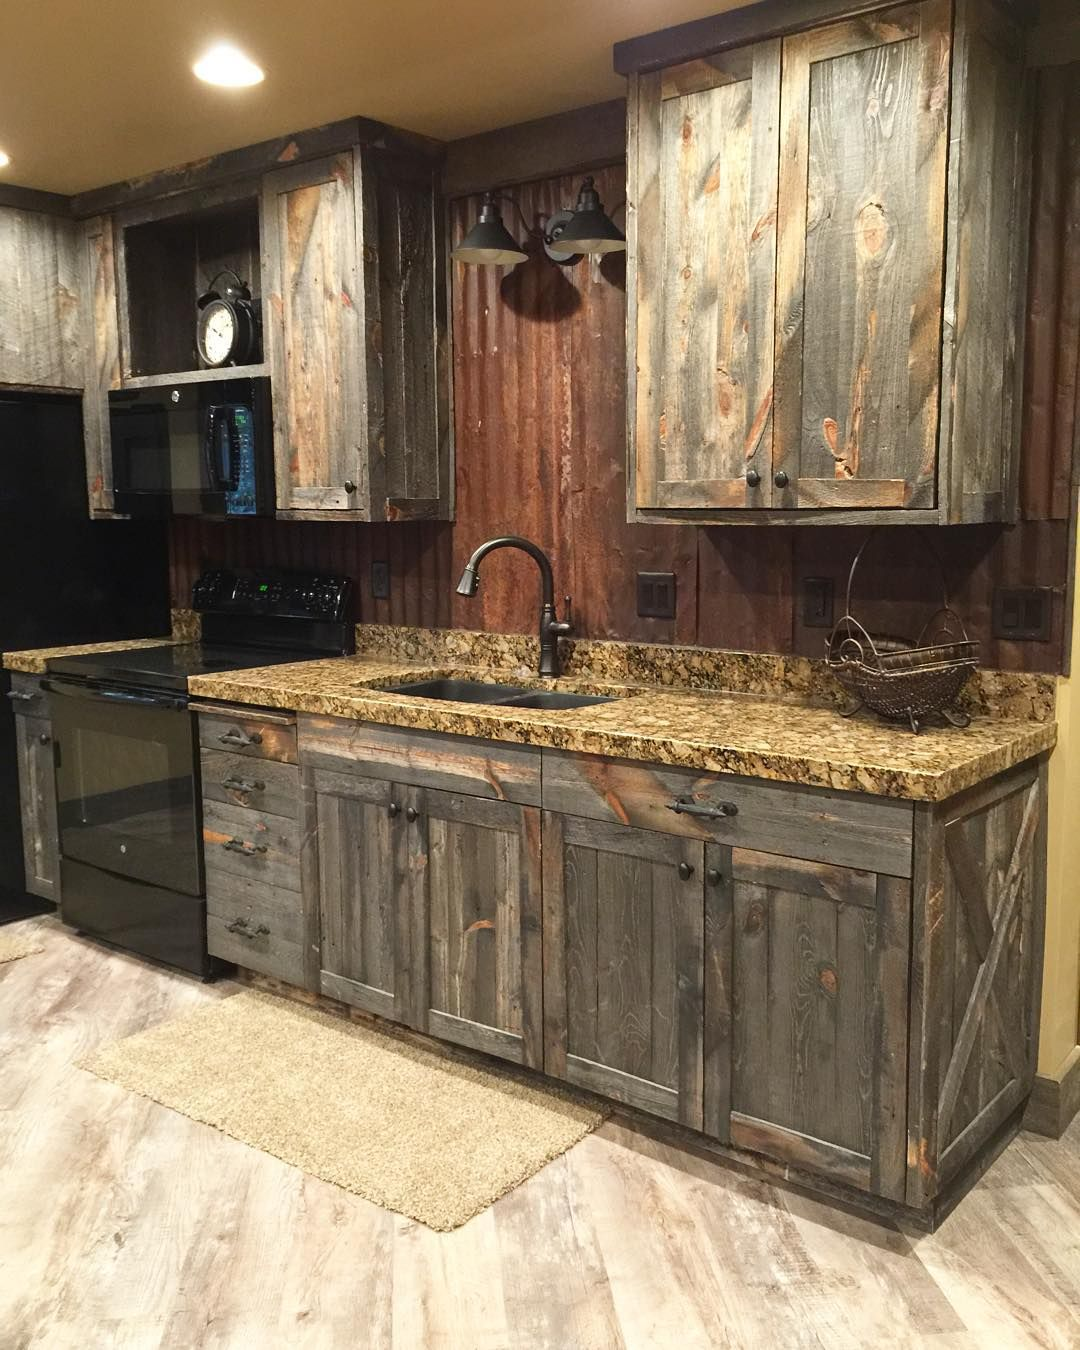 rustic kitchen cabinet faucet diverter 15 cabinets designs ideas with photo gallery a little barnwood and corrugated steel backsplash love how homey it is cabininthewoods diy